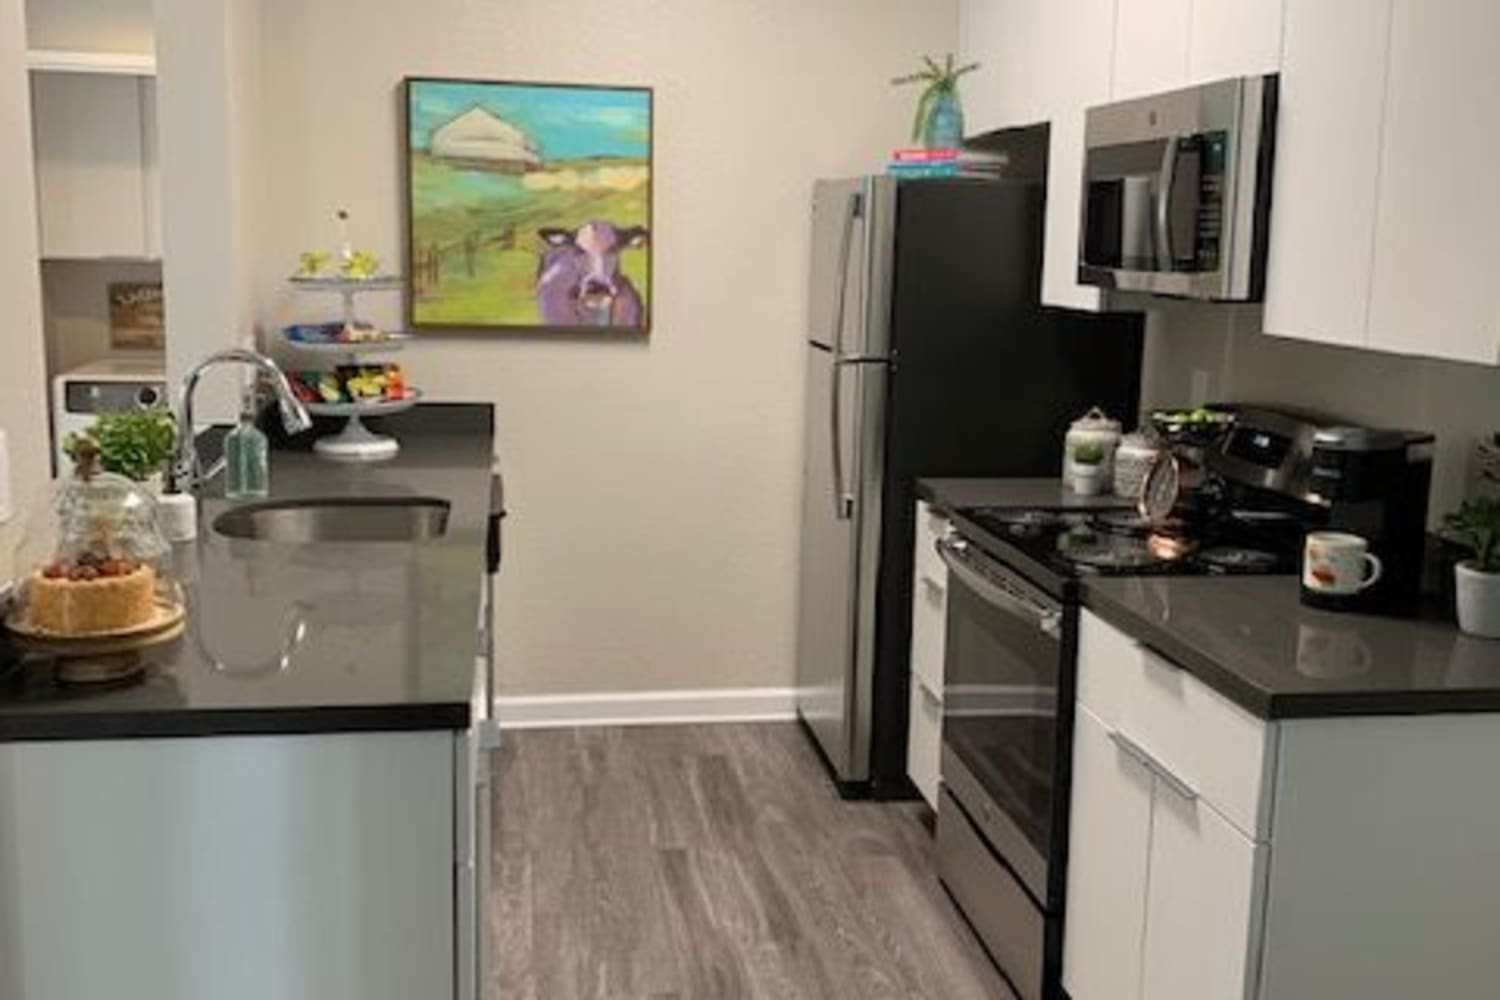 Cotton Wood Apartments offers a Beautiful Kitchen in Dublin, California